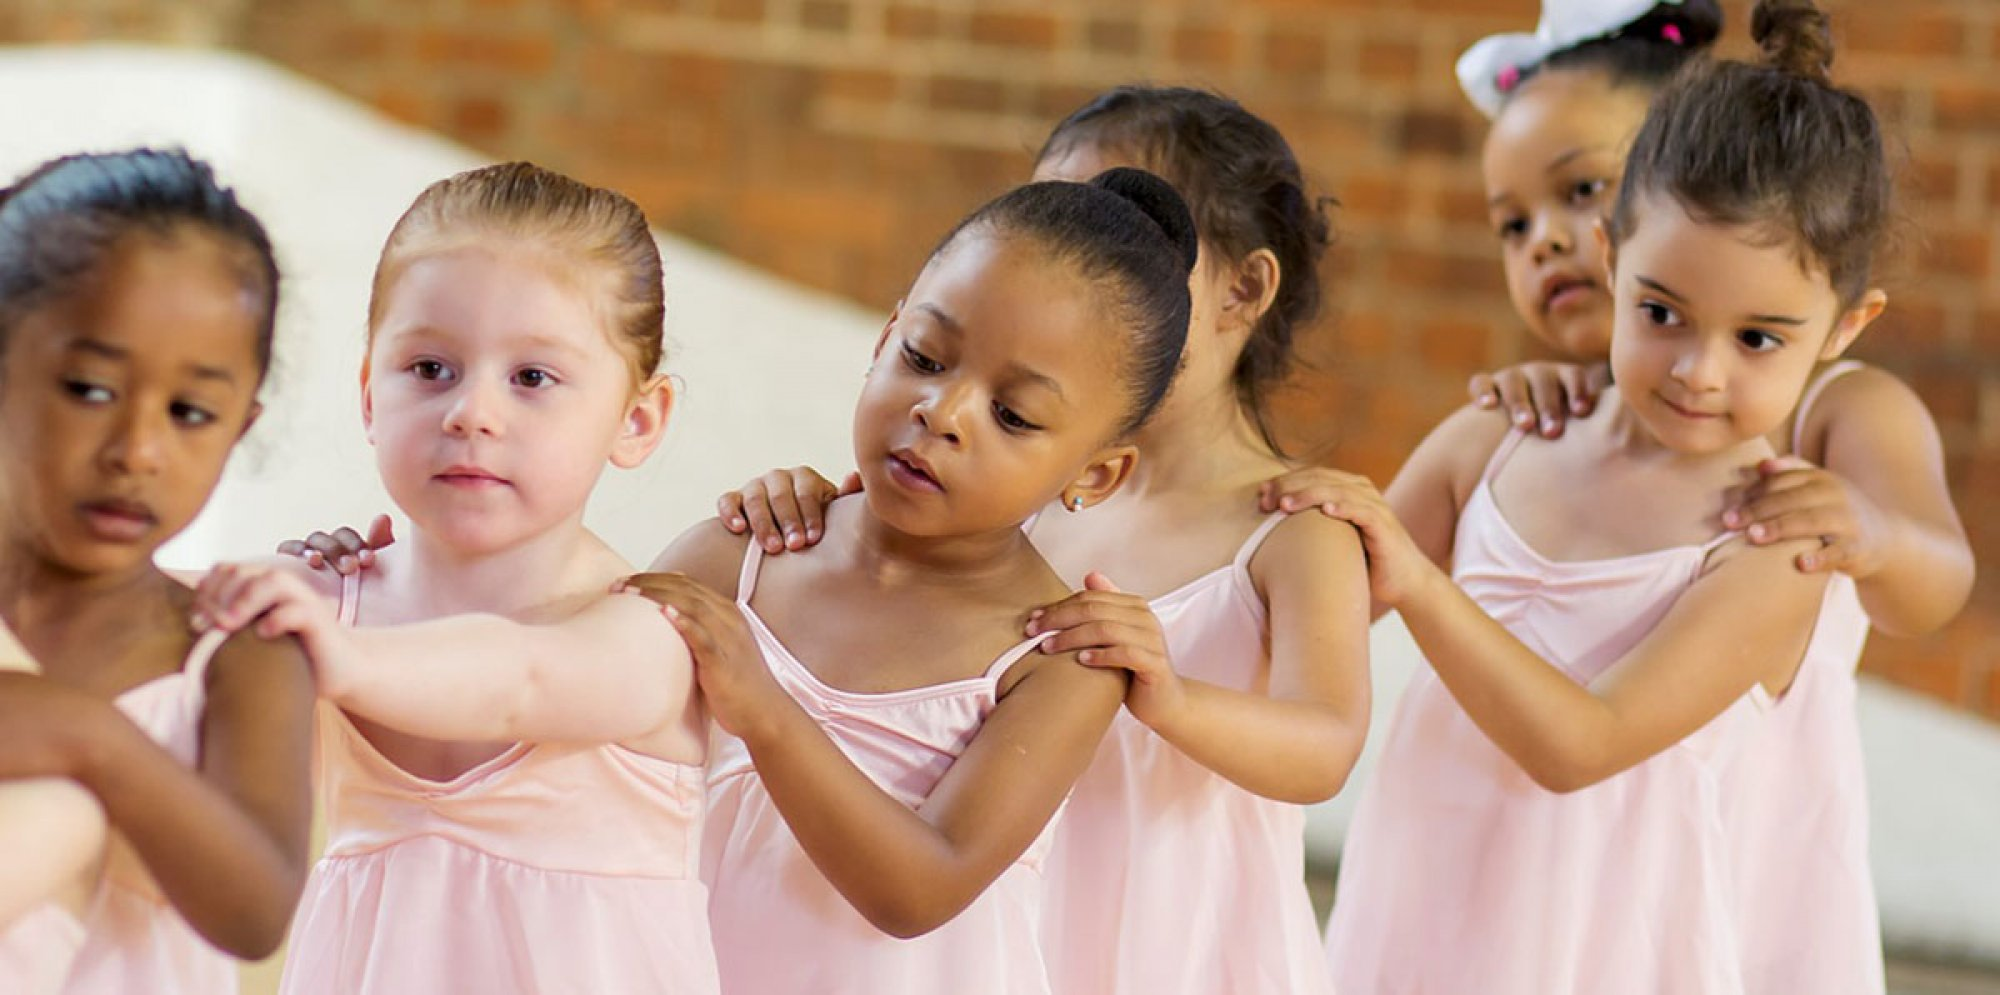 Little London Ballet: six little girls with their hair tied back in soft pink ballet dresses form a line, their arms resting on the shoulder of the girl in front of them. They curiously watch over each others shoulders.